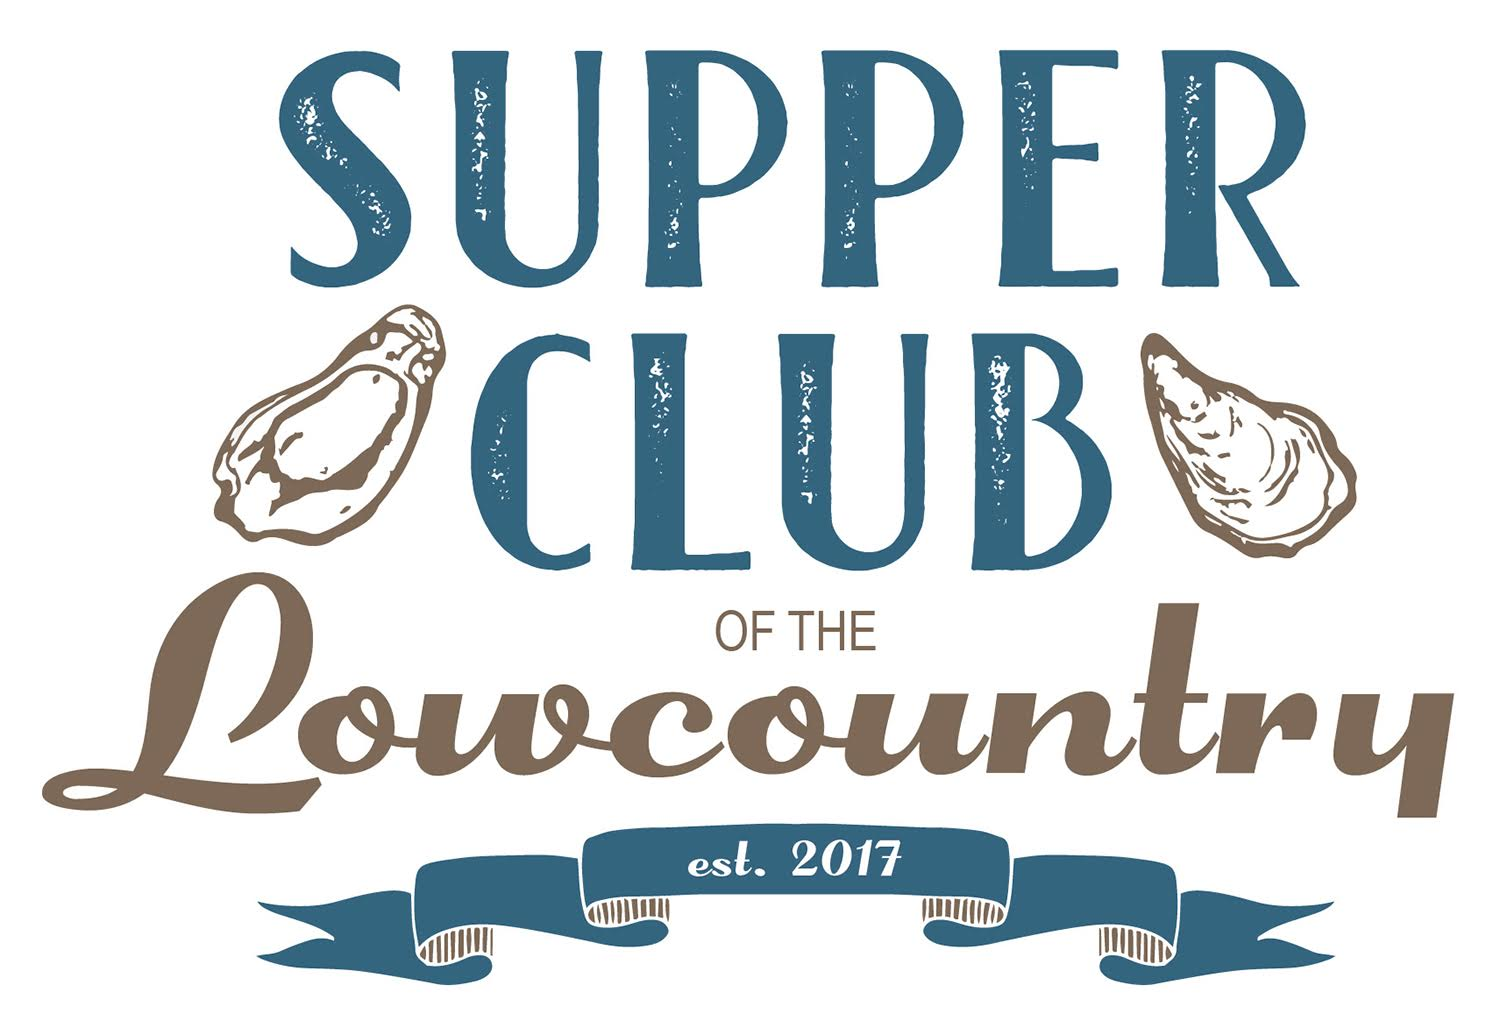 Supper Club of the Lowcountry